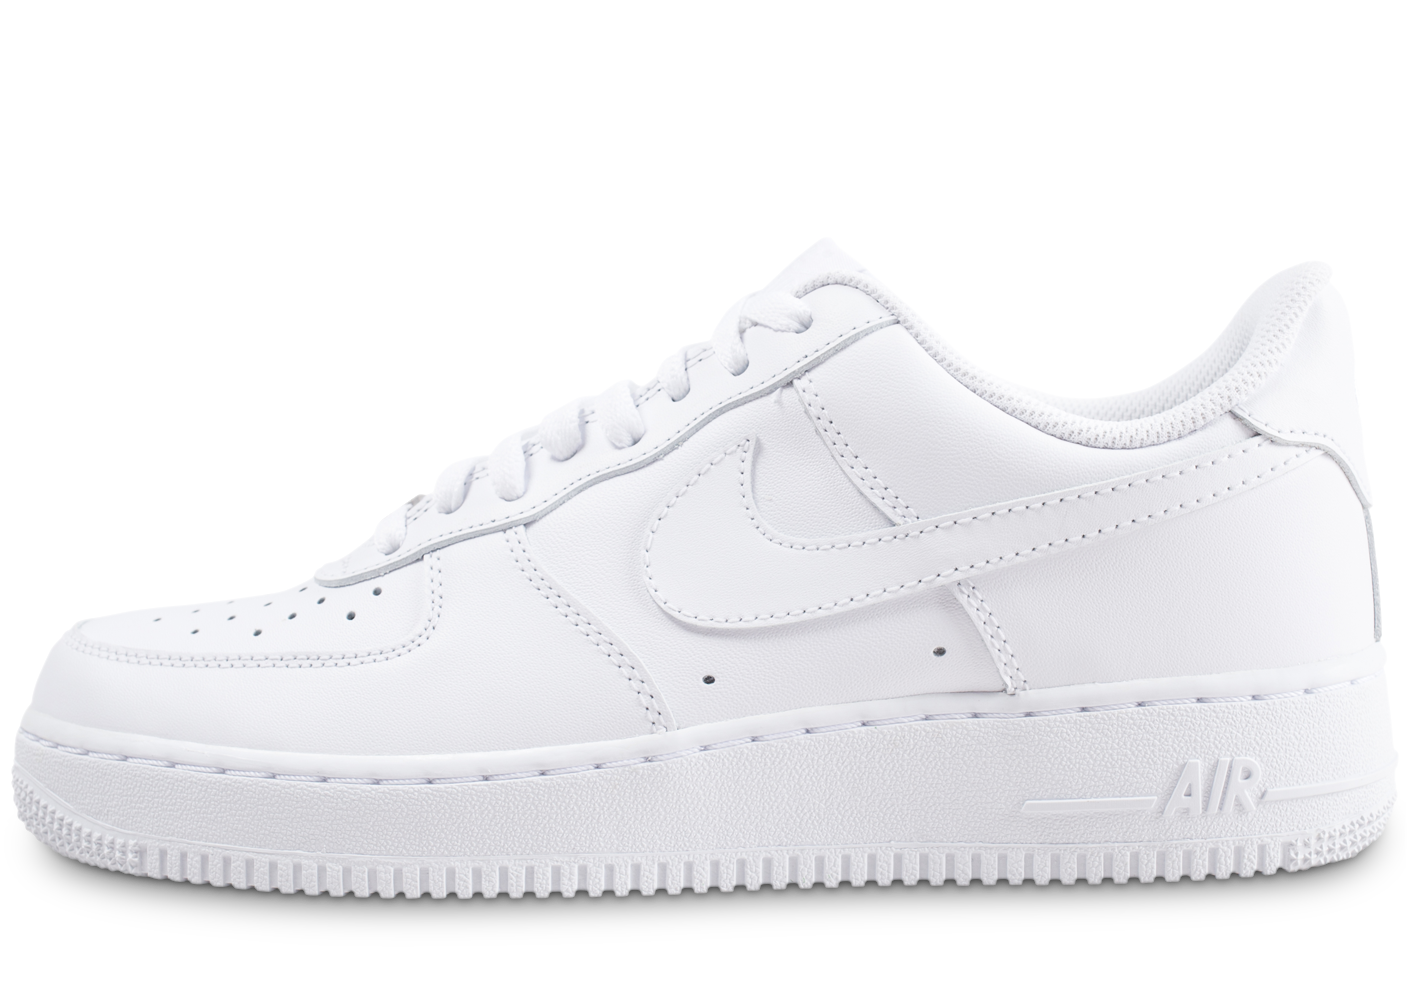 Nike Homme Air Force 1 Blanche Baskets